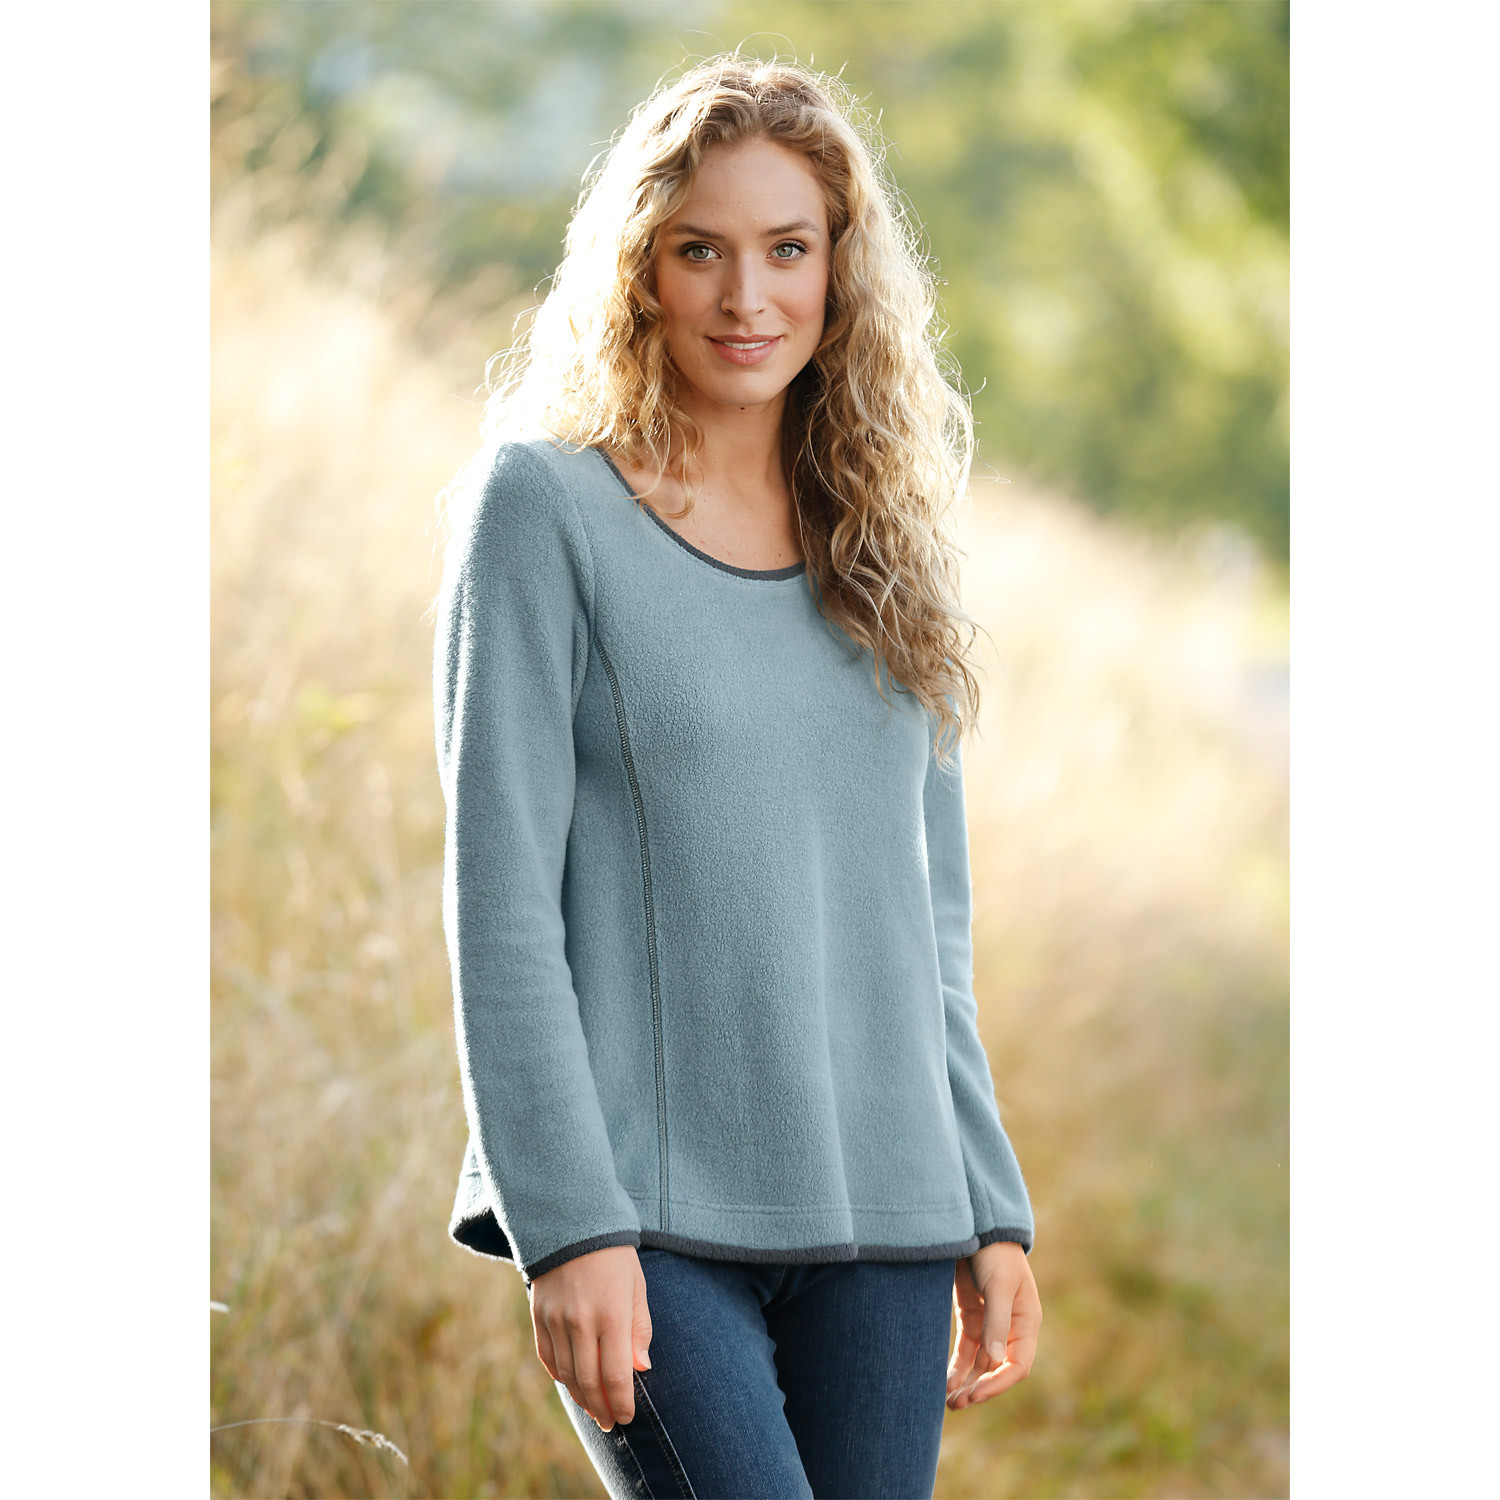 Fleece-Langarmpullover, schiefer